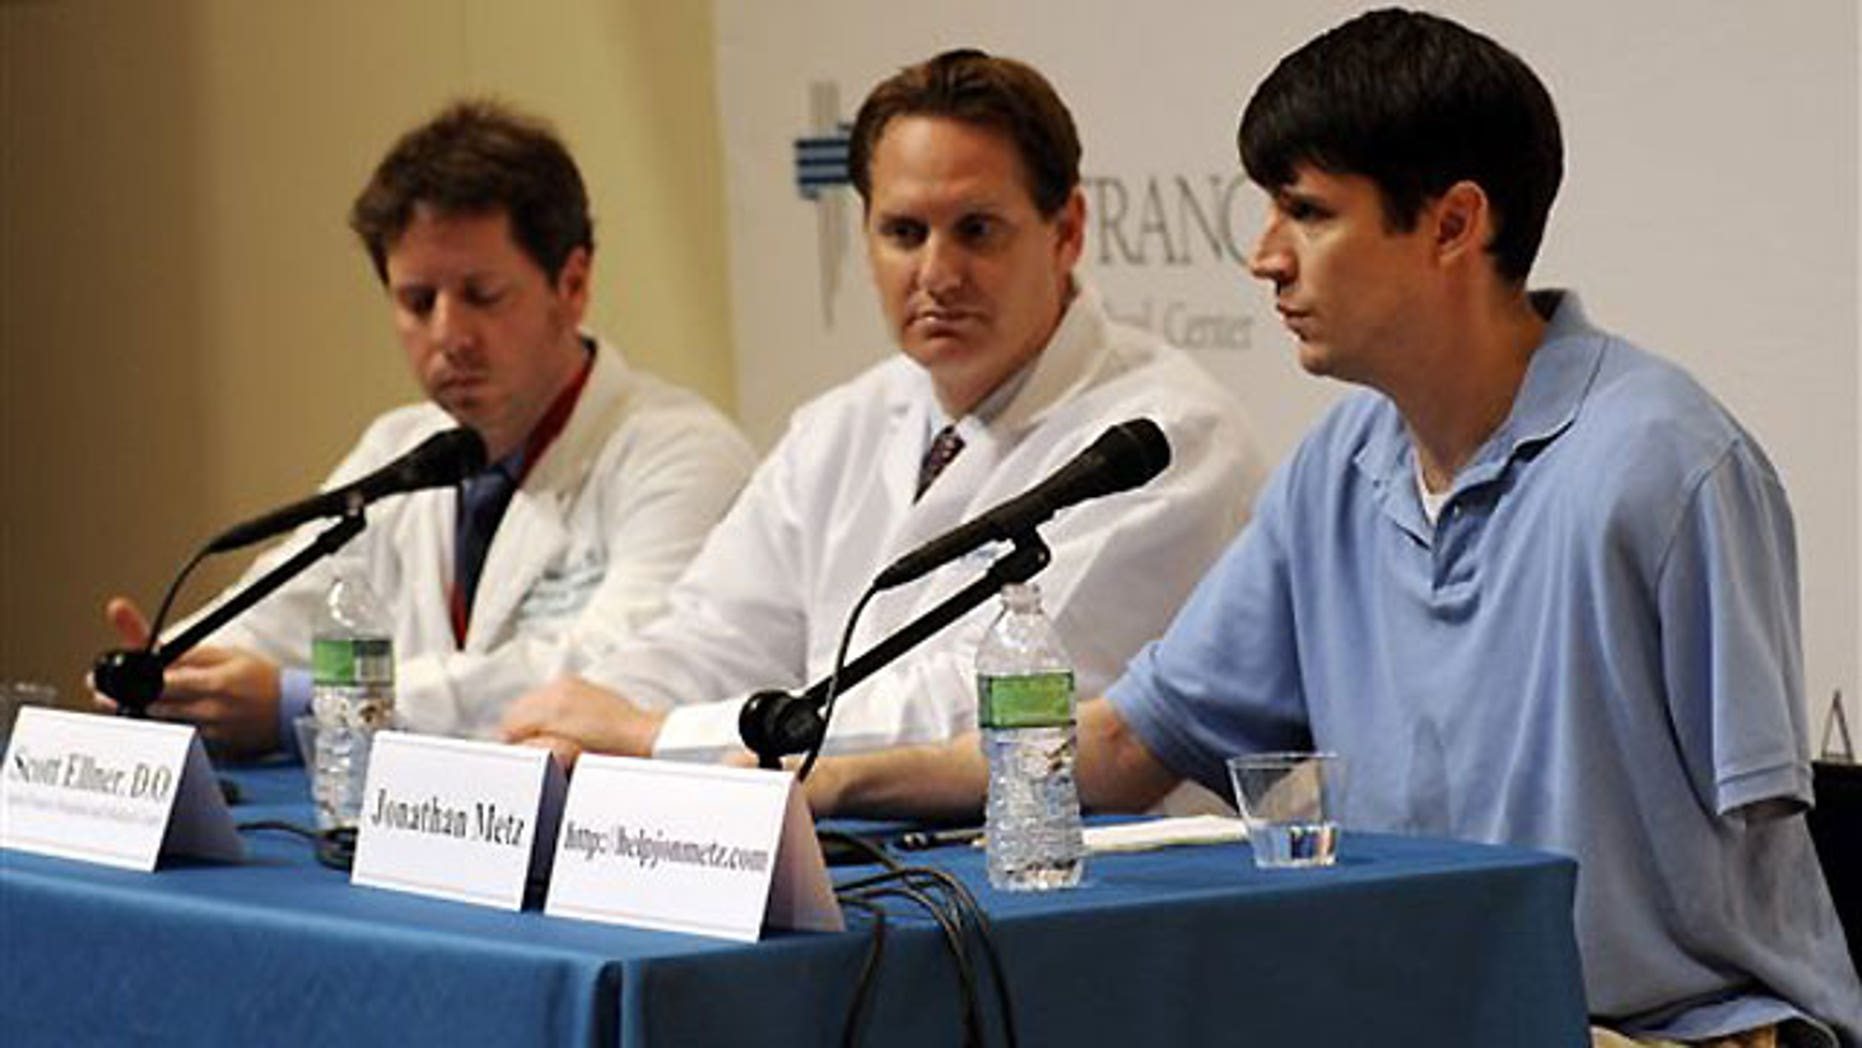 June 15: Jonathan Metz speaks at a news conference at St. Francis Hospital in Hartford, Conn. Metz had his arm stuck in his furnace boiler for about 12 hours when he concluded that amputating the limb was his only chance for survival.